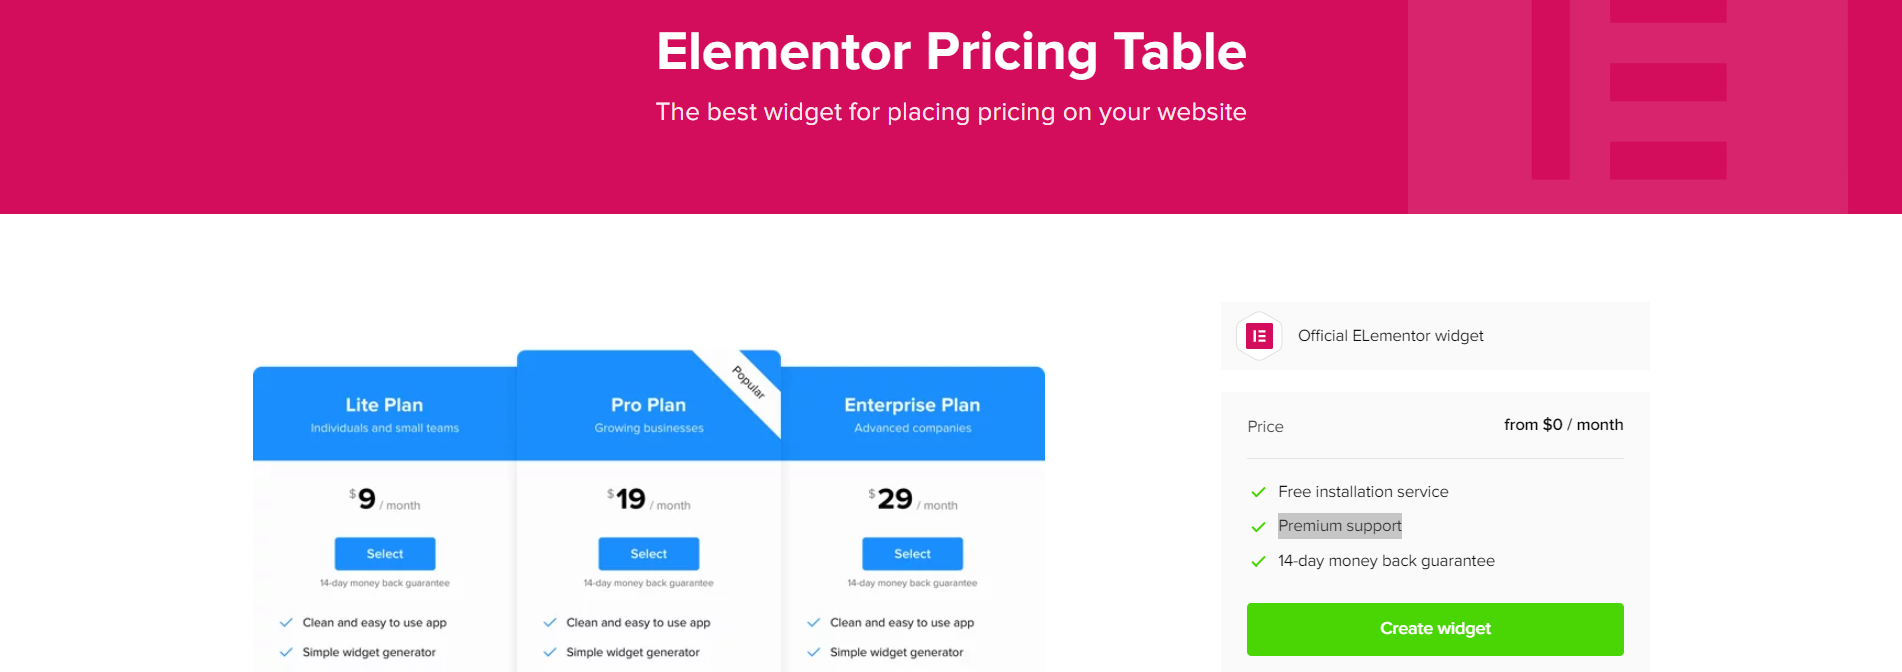 elementor pricing table 3